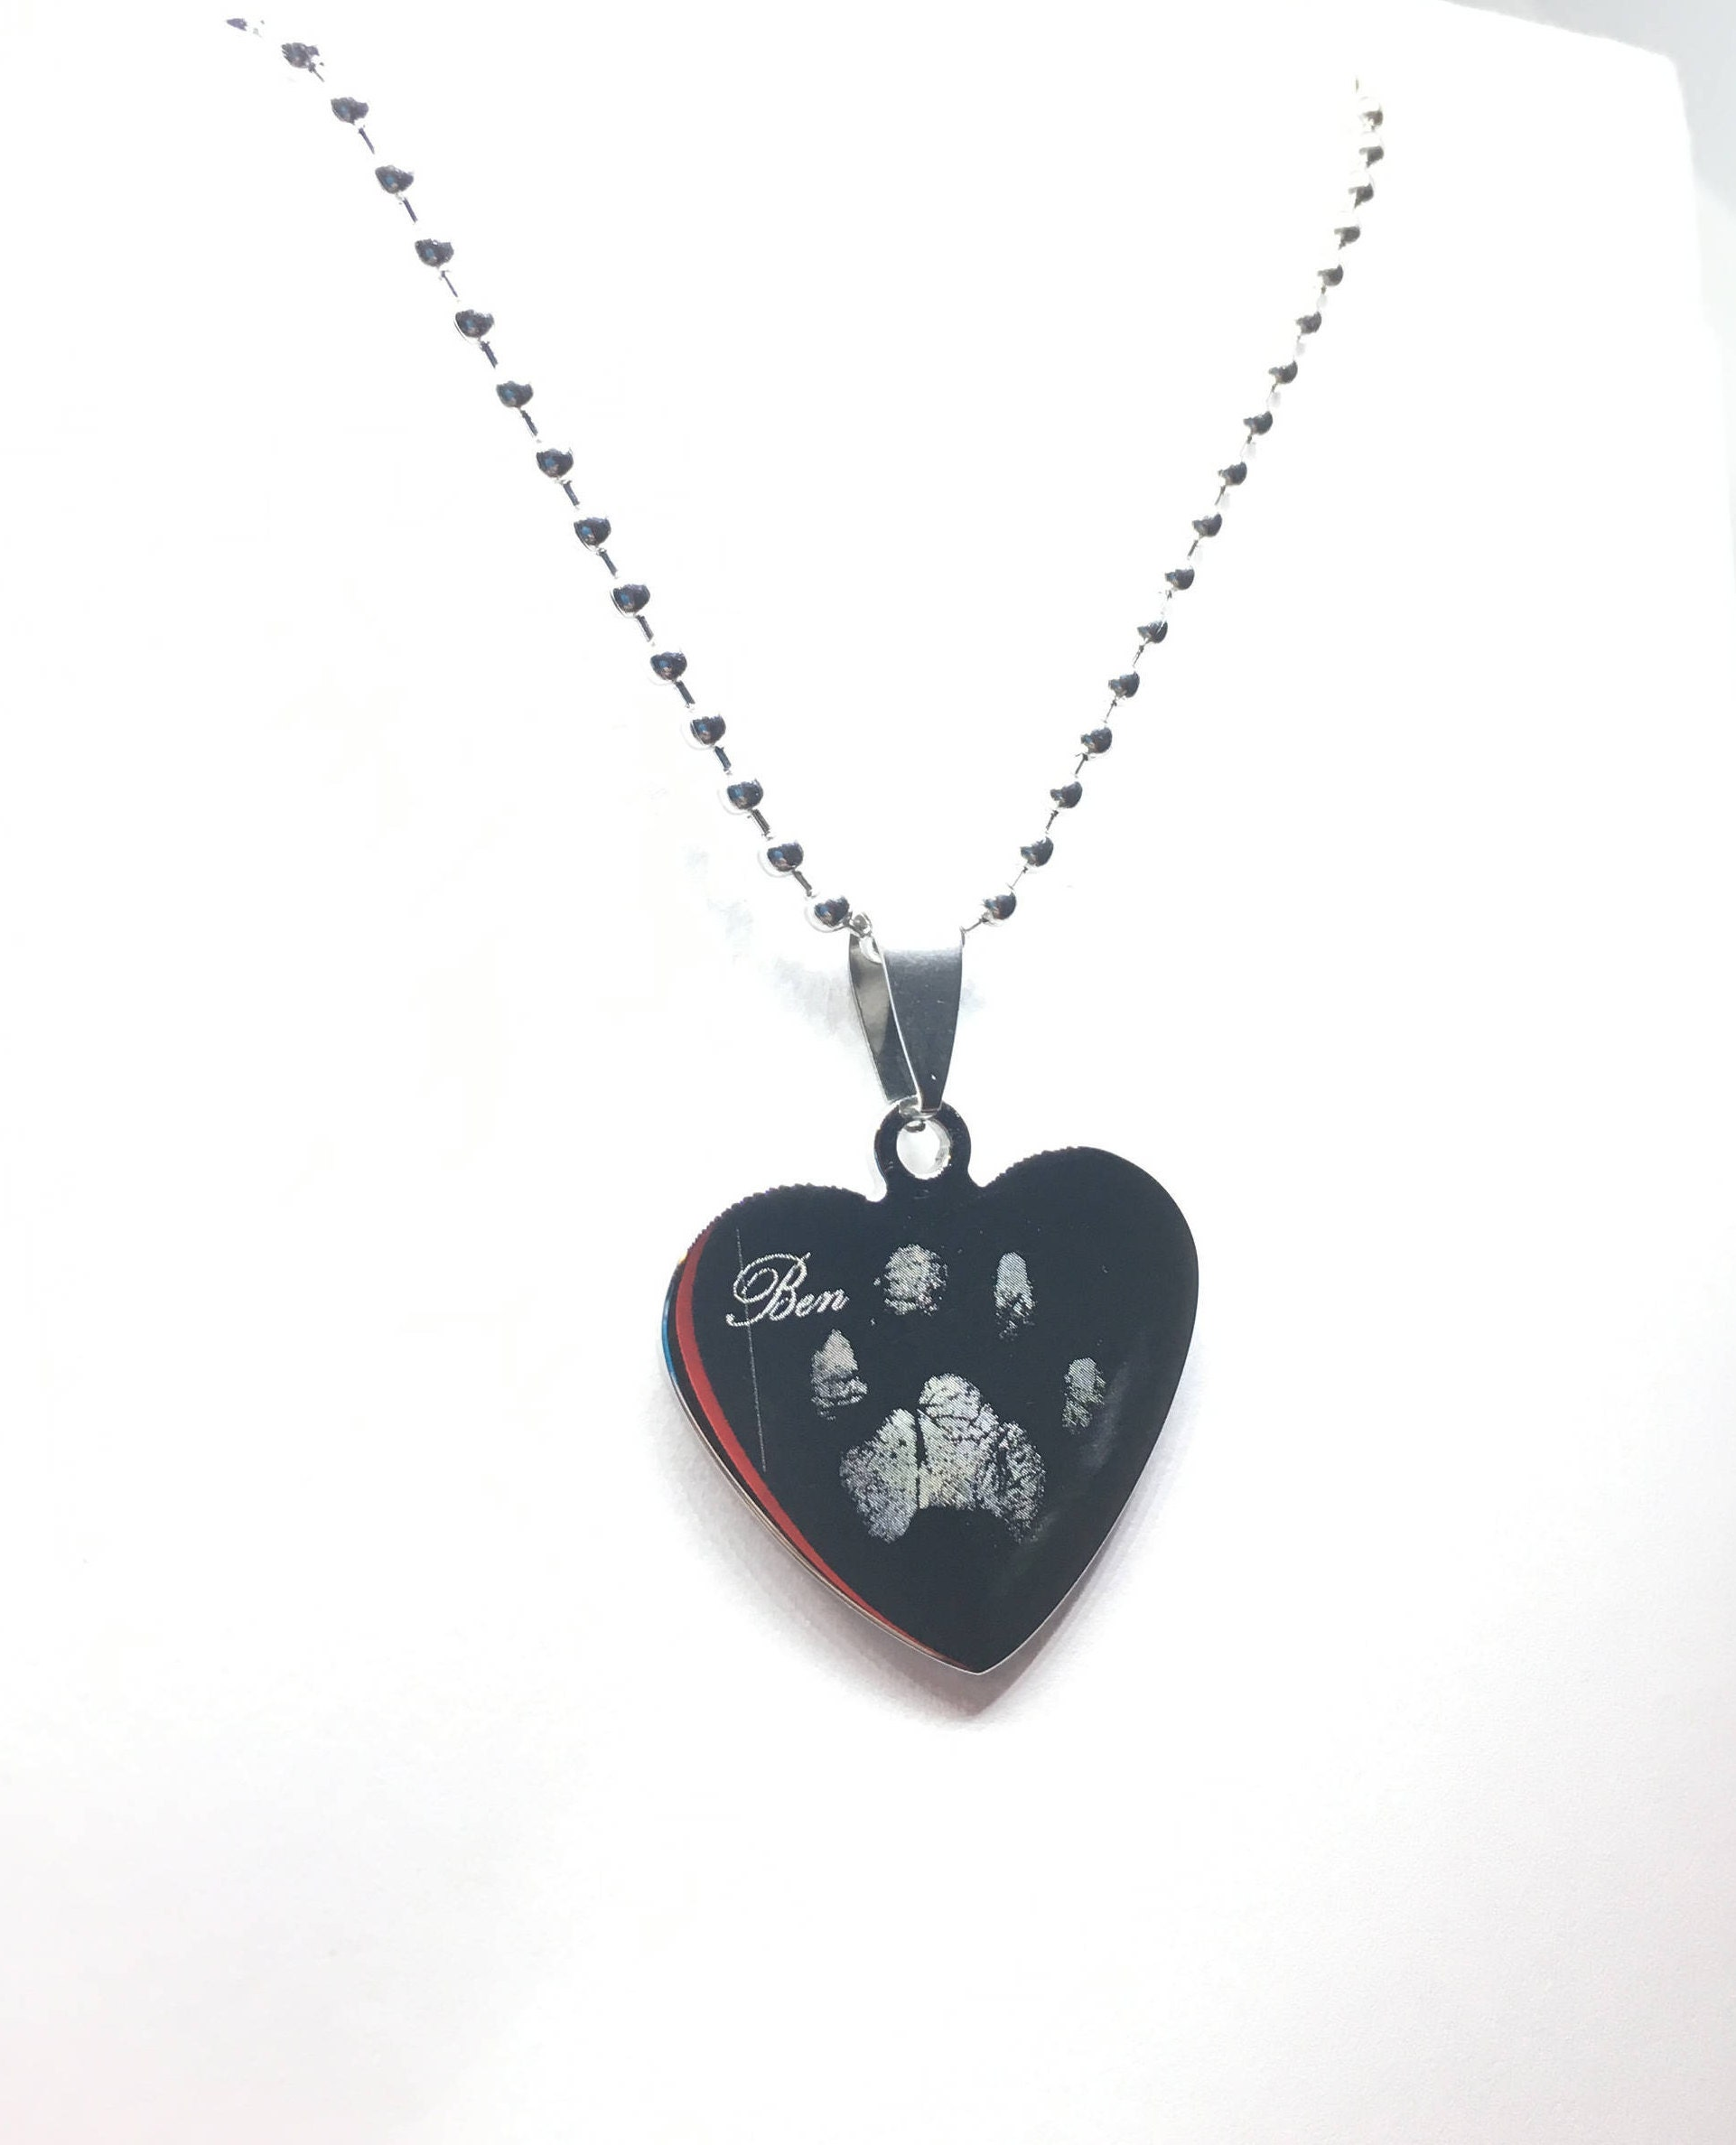 real pawprint necklaces engraved keepsakes personalized gift